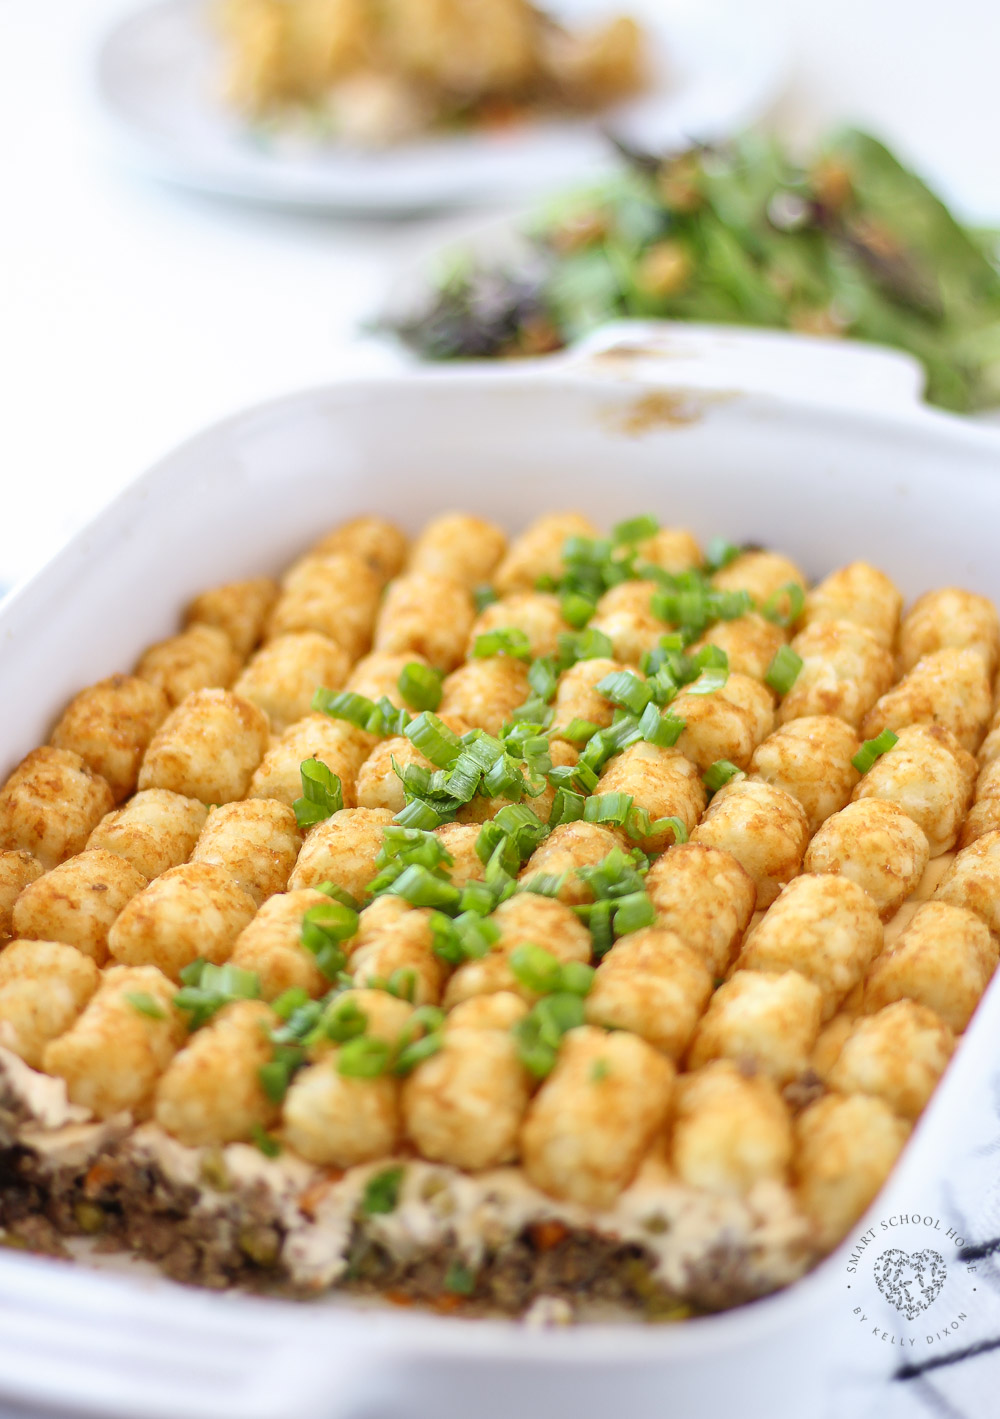 Put on your comfiest pajamas, a good show, and enjoy each other's company with this quick and easy Cheesy Tater Tot Casserole recipe that everyone loves.